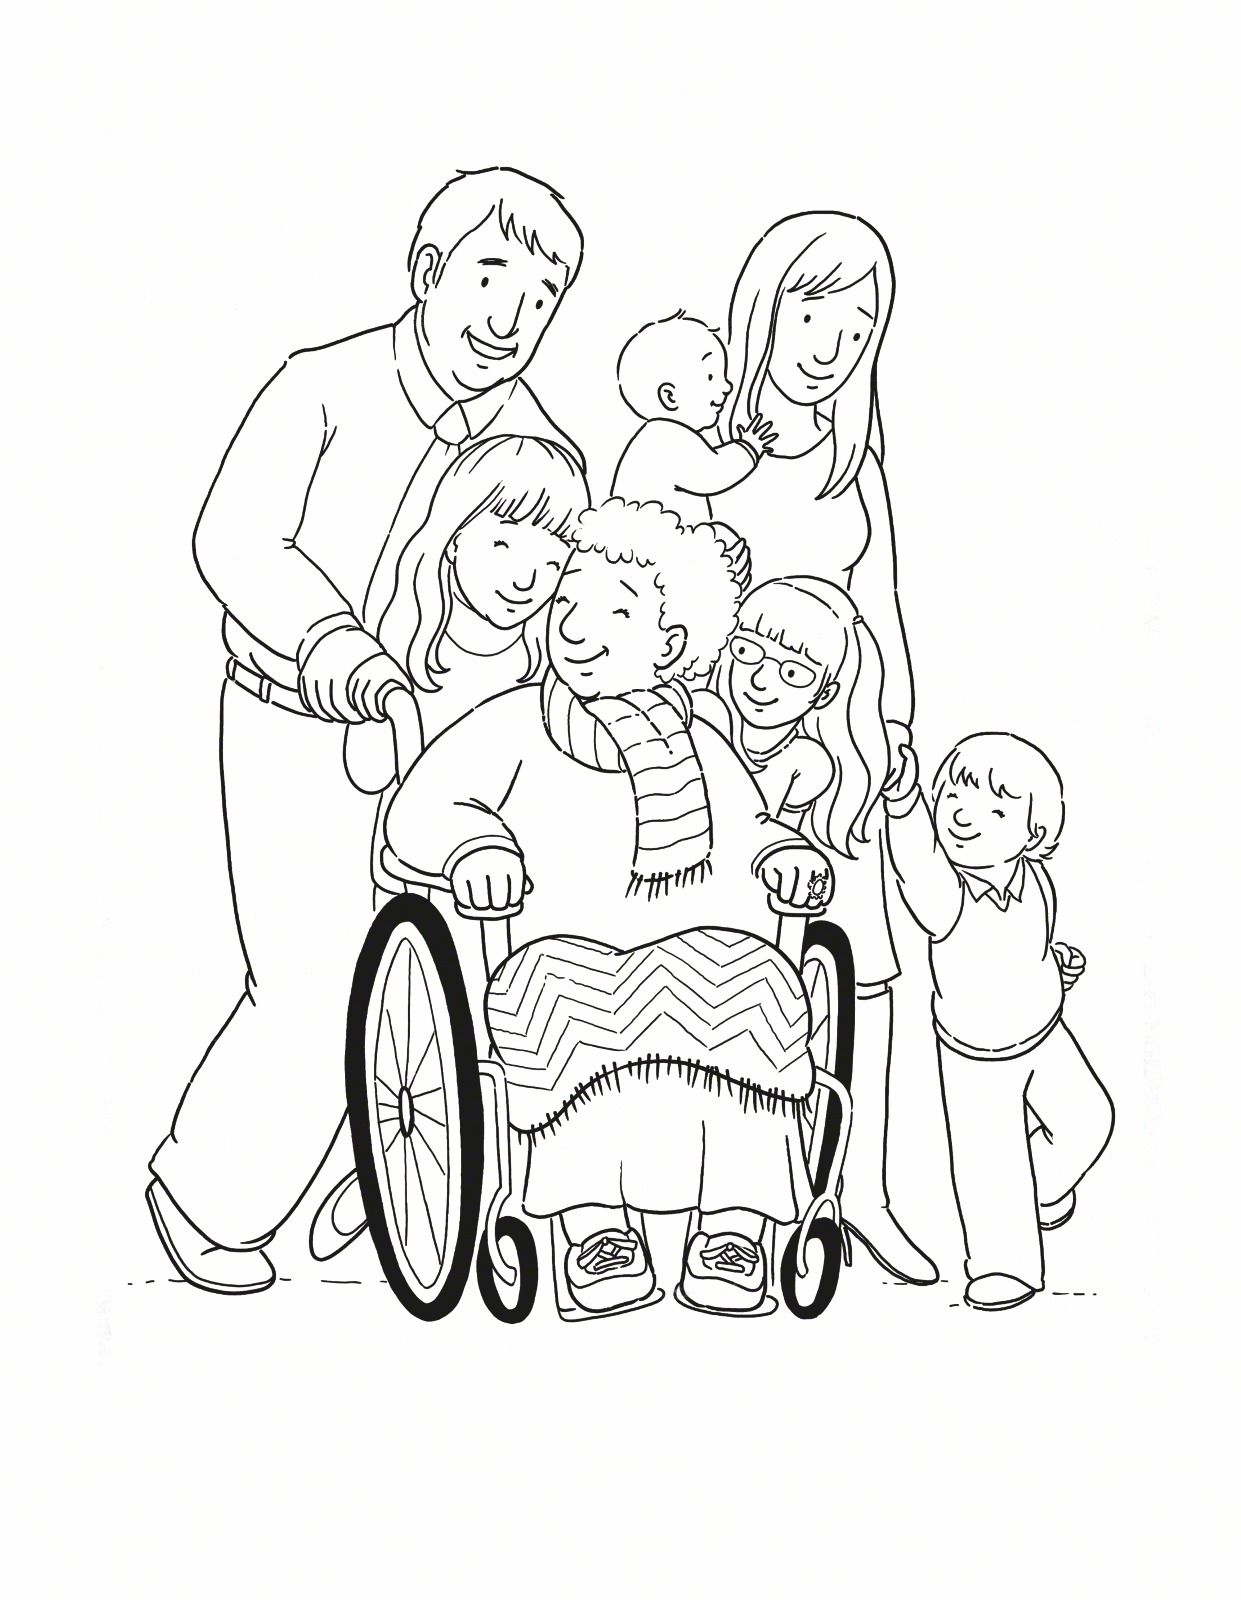 Children Helping Others Coloring Pages Hd Images 3 HD Wallpapers